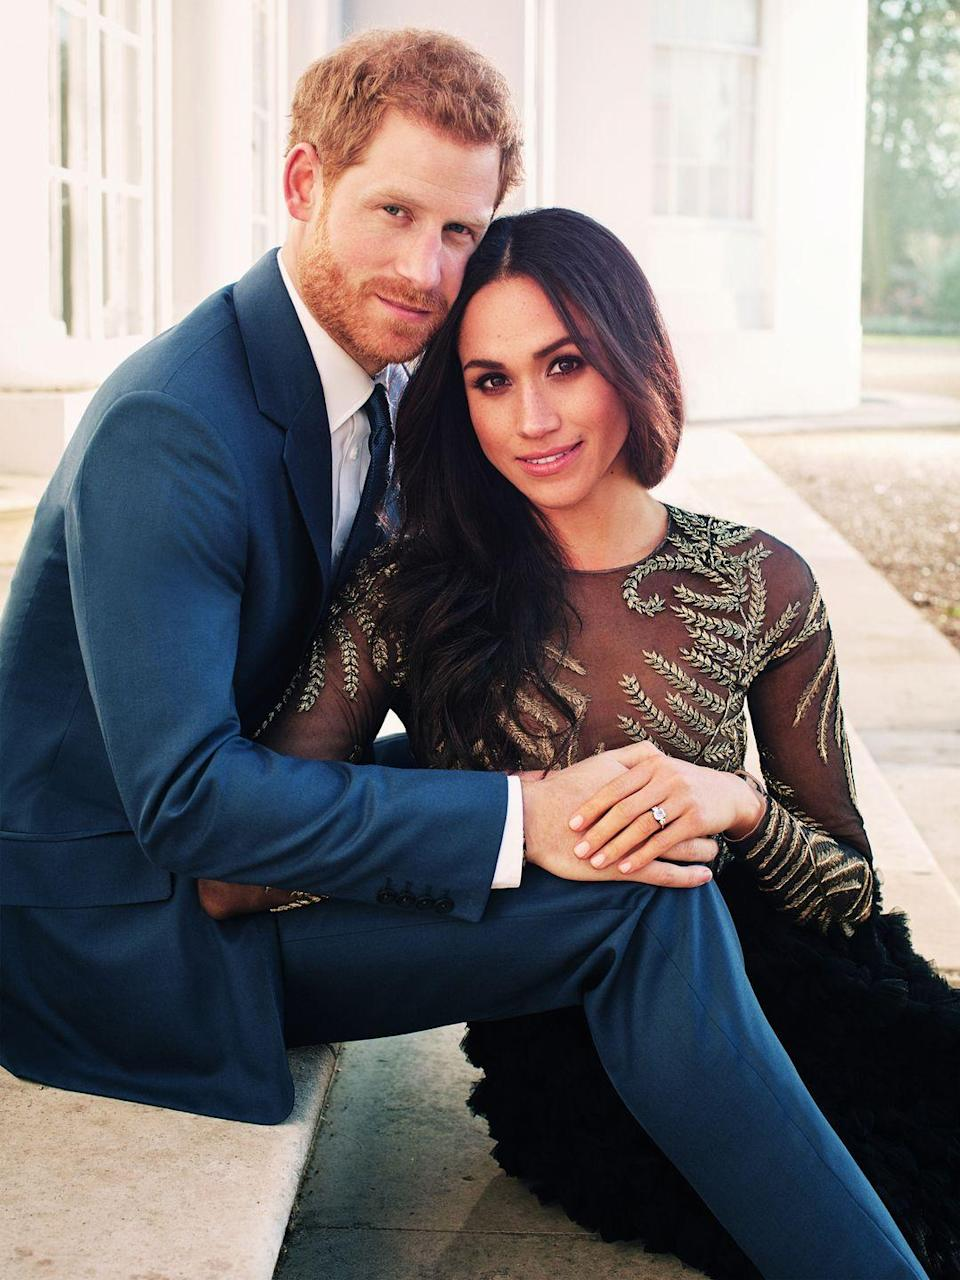 "<p><a href=""https://www.townandcountrymag.com/style/fashion-trends/a14478277/meghan-markle-ralph-prince-harry-engagement-picture-ralph-russo/"" rel=""nofollow noopener"" target=""_blank"" data-ylk=""slk:Read all about the gorgeous Ralph & Russo gown Meghan wore here."" class=""link rapid-noclick-resp"">Read all about the gorgeous Ralph & Russo gown Meghan wore here.</a></p>"